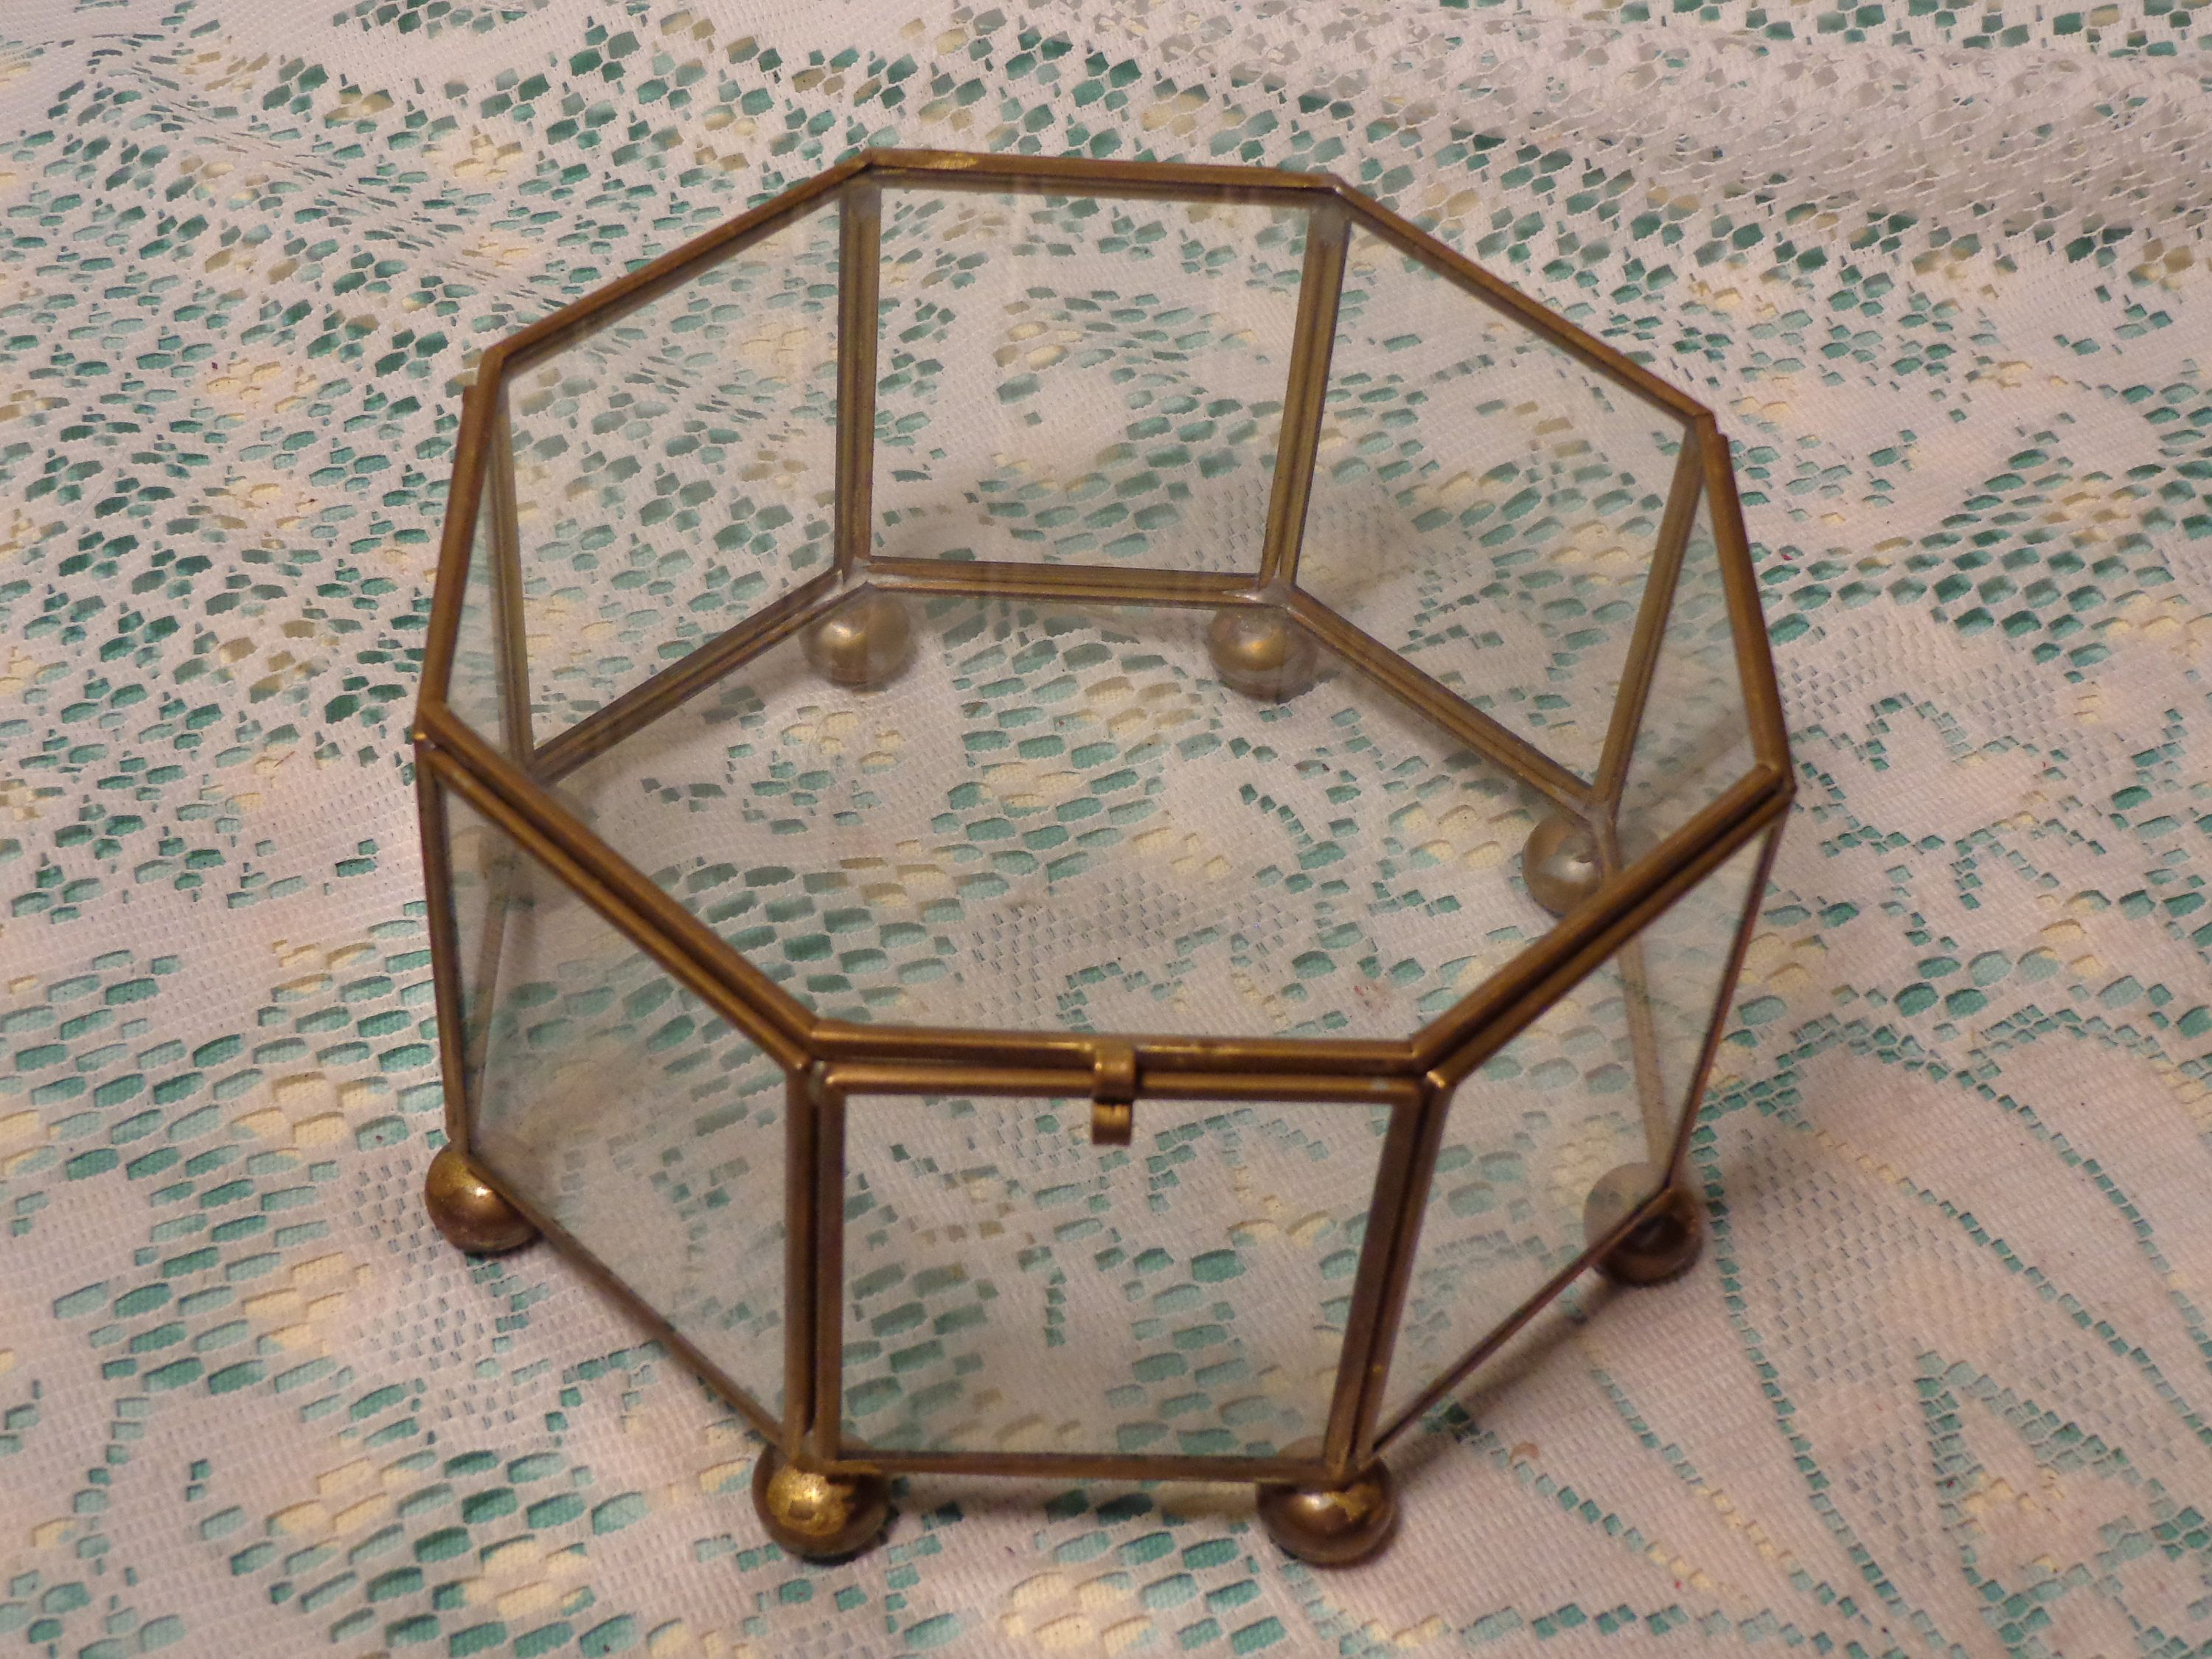 Vintage Glass and Brass Display Case - Octagon Jewelry Casket  -  17-115 by BubbiesMemories on Etsy